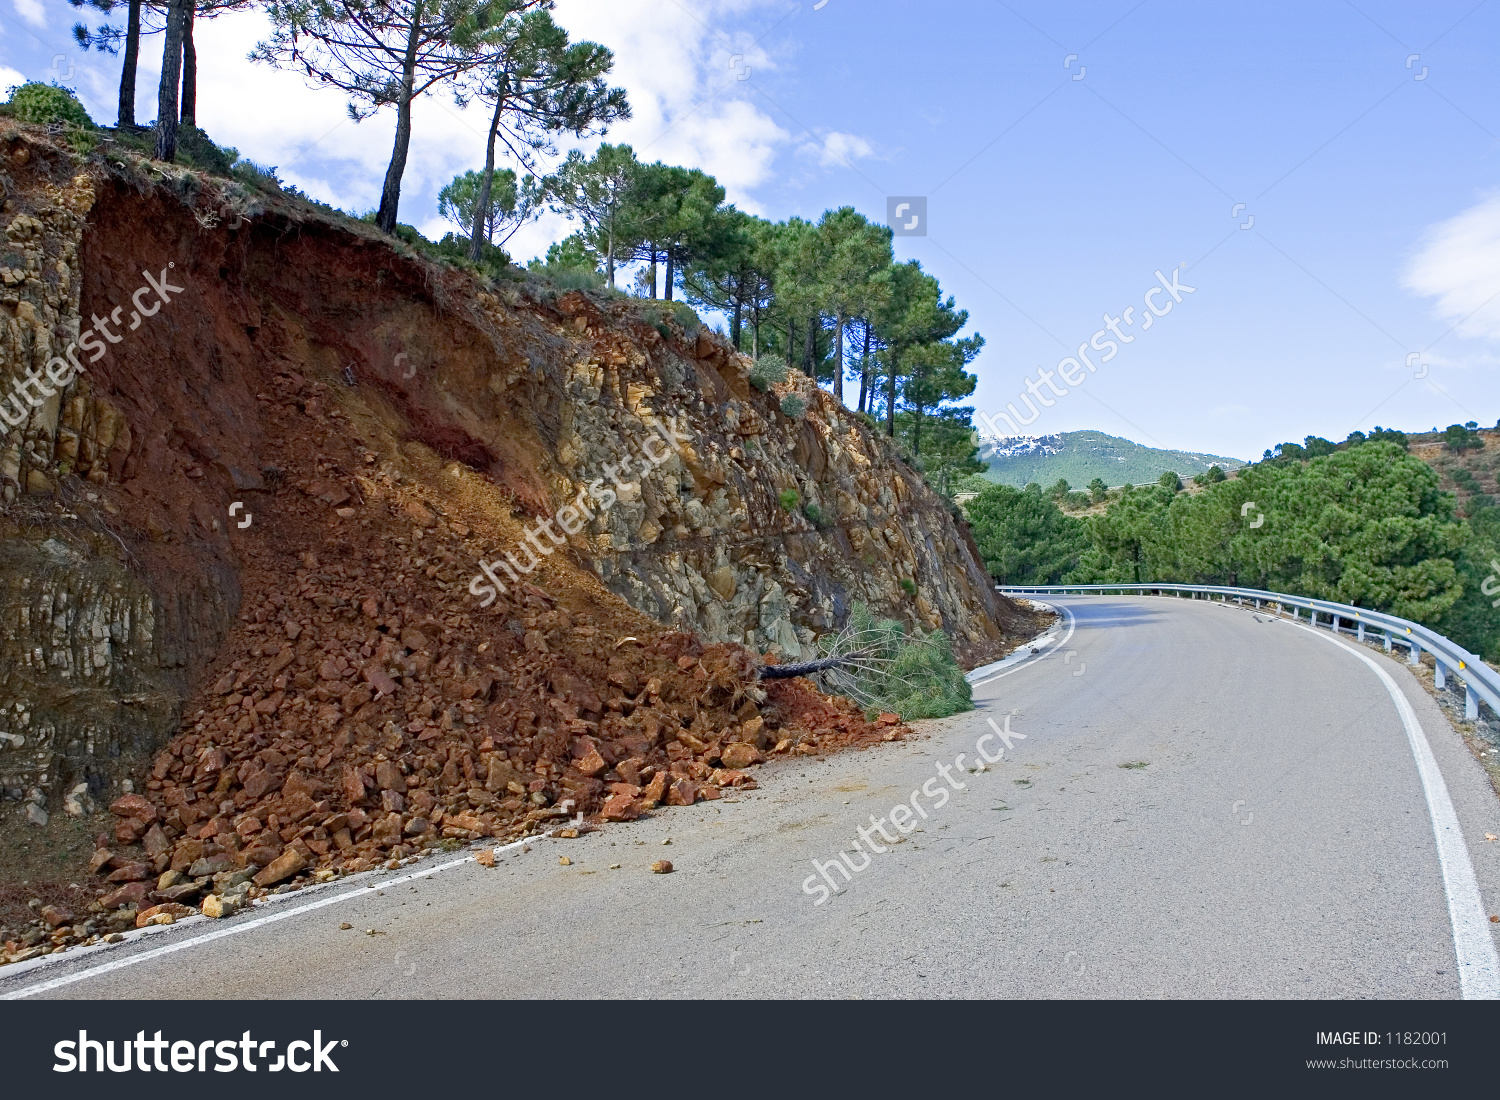 Land Mudslide On Mountain Road After Stock Photo 1182001.